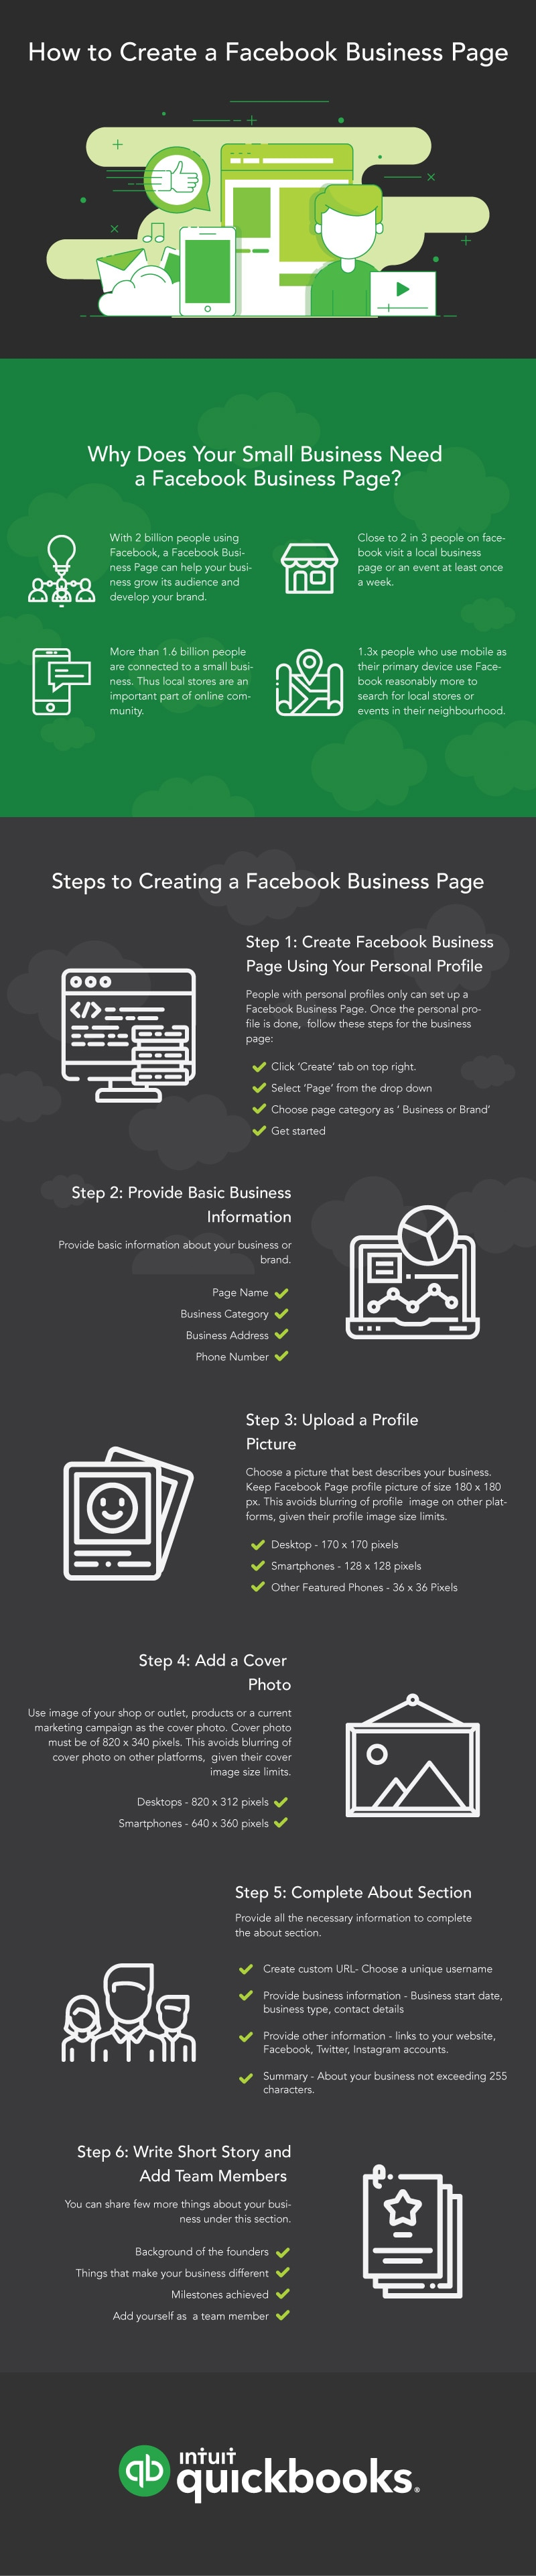 INFOGRAPHIC FACEBOOK BUSINESS PAGE